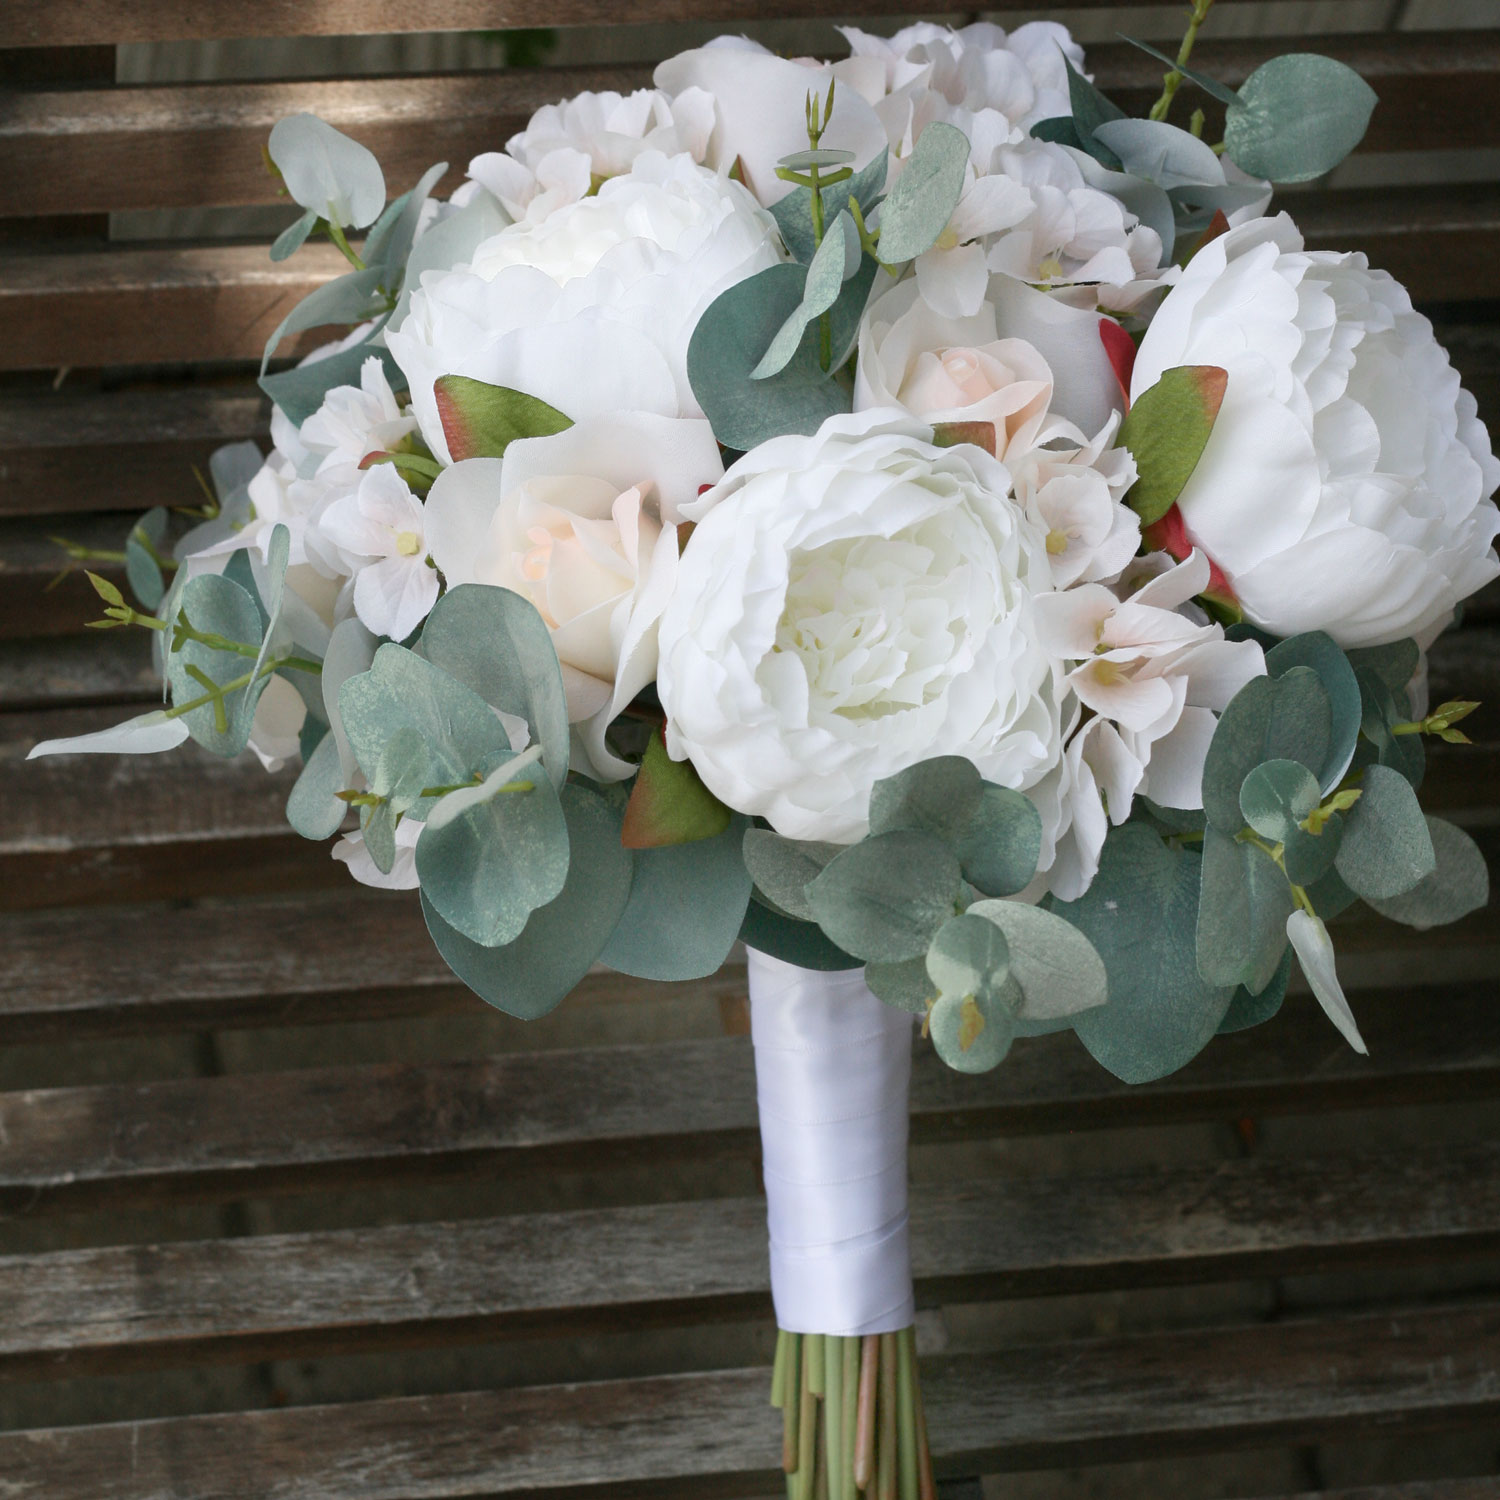 ivory-blush-large-silk-wedding-bouquets-thebridesbouquet3.jpg